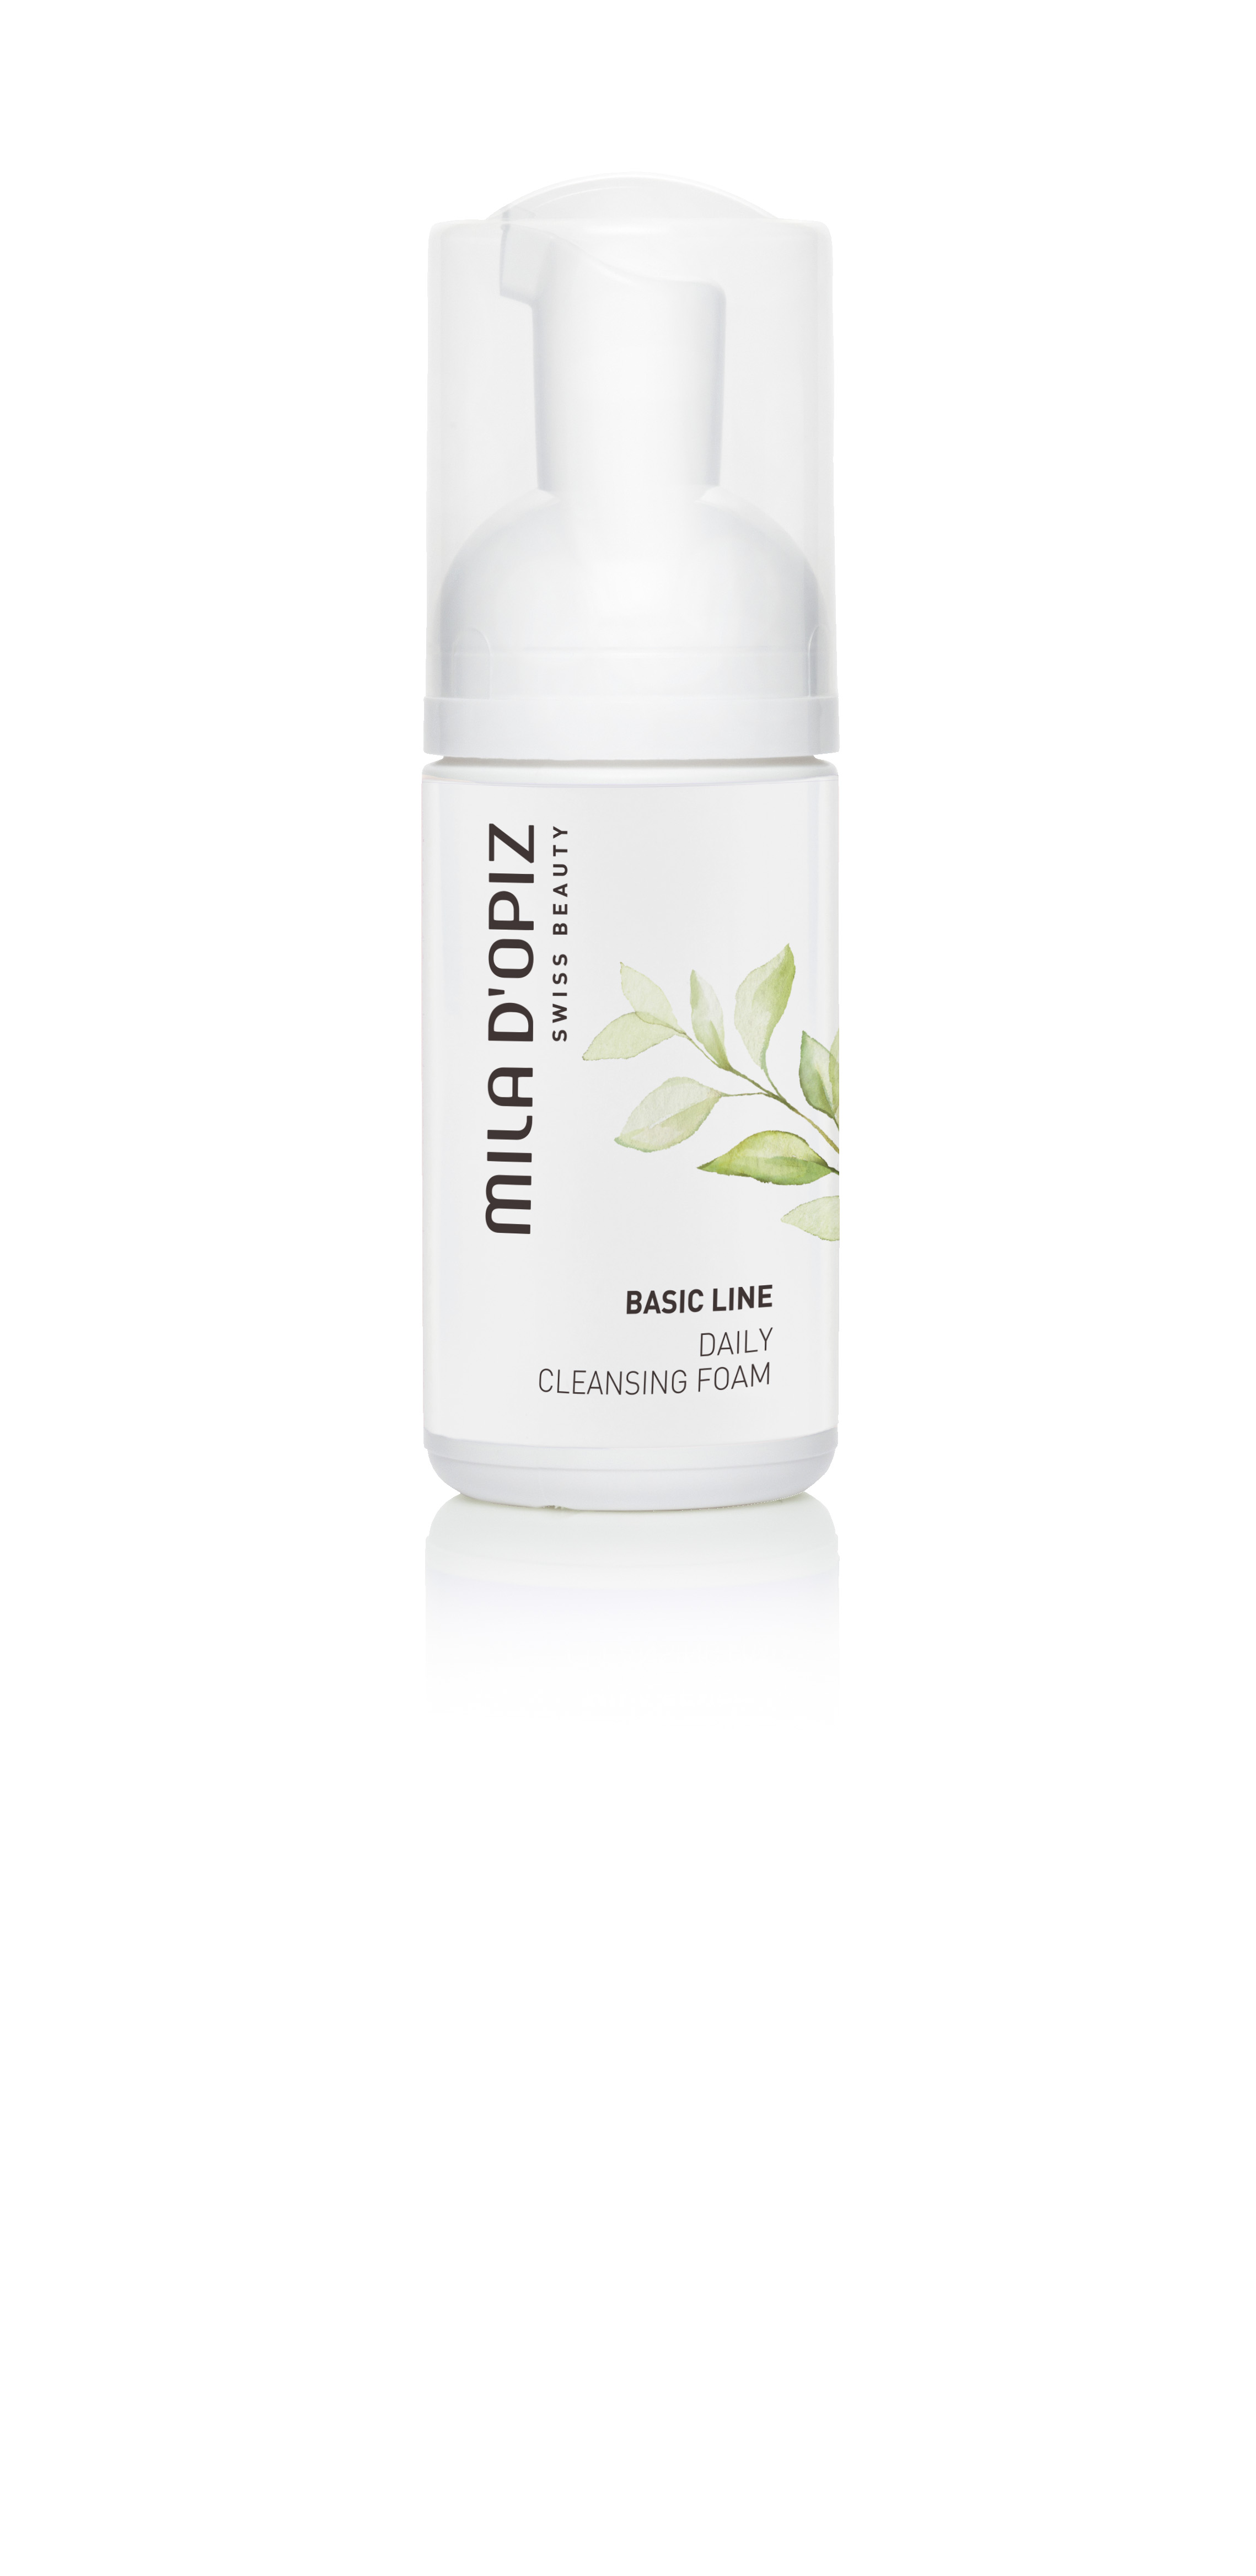 Basic Line Daily Cleansing Foam